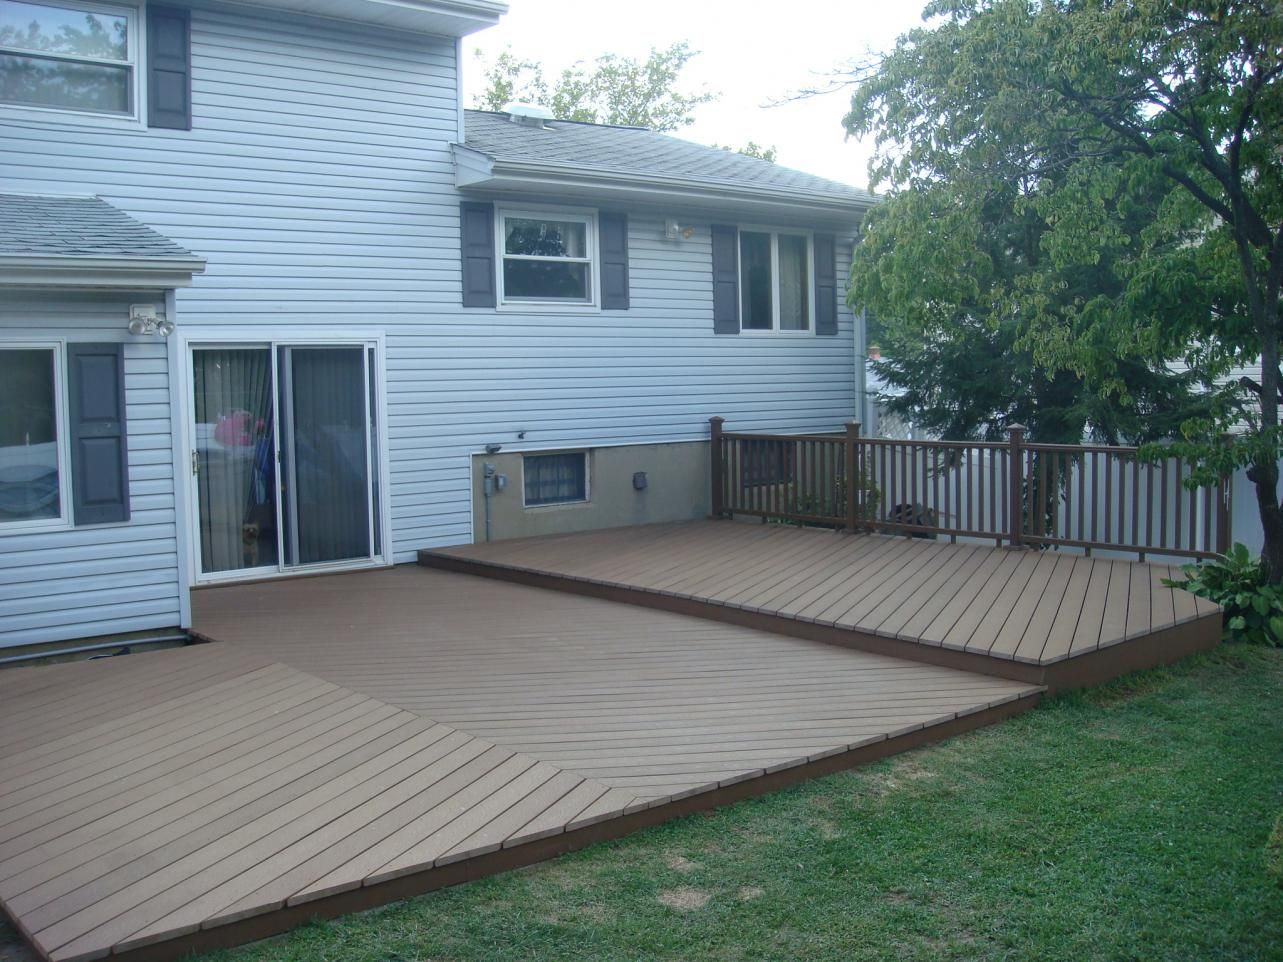 Httpssmediacacheakpinimgcomoriginalsa - Design a deck home depot